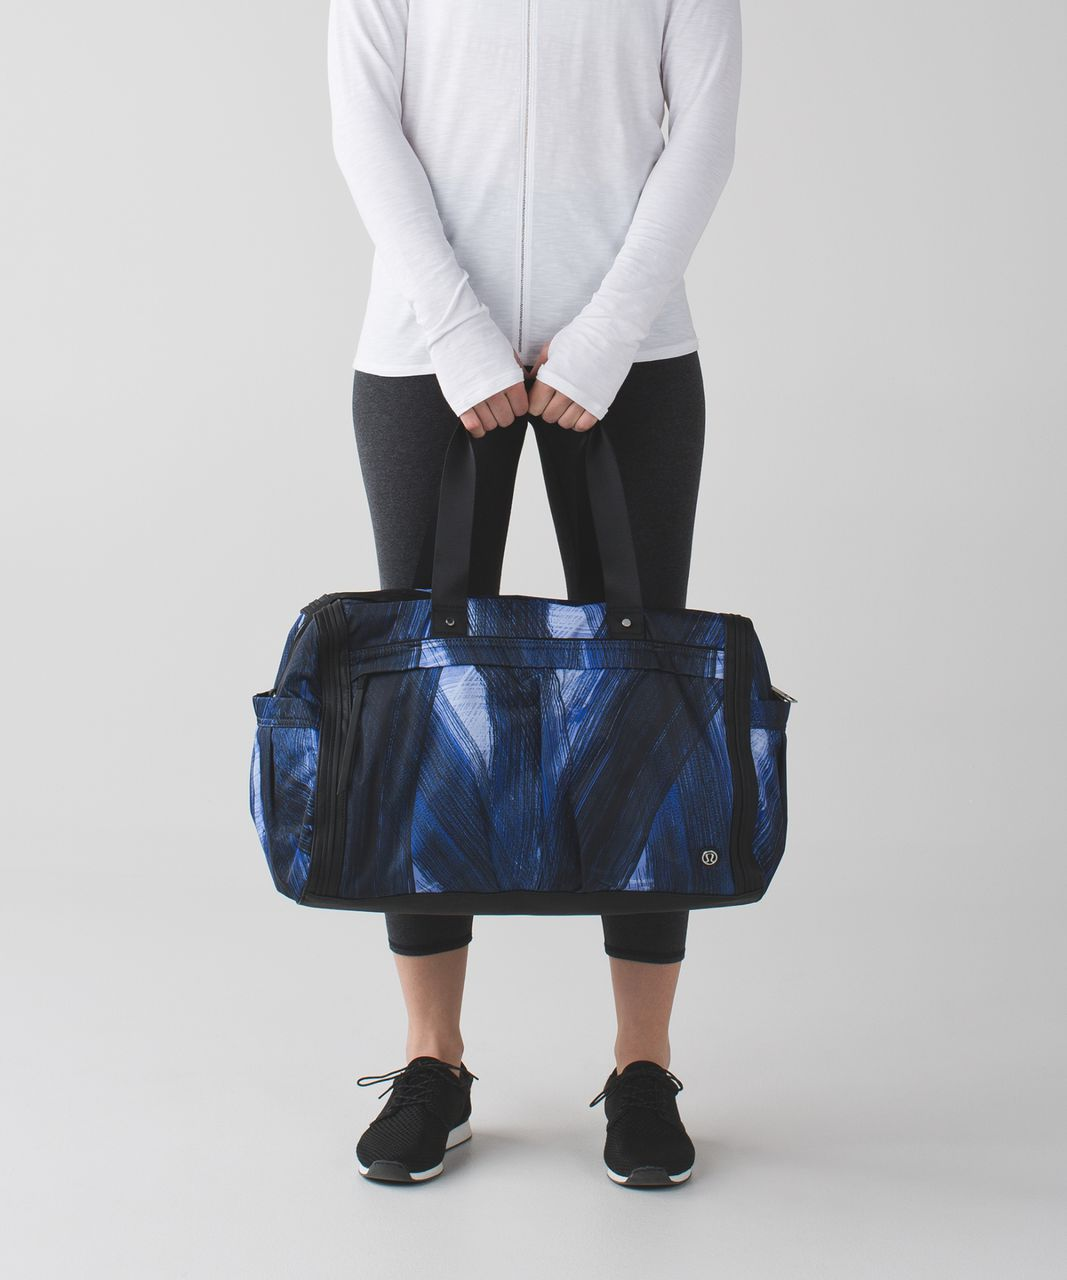 Lululemon Urban Warrior Duffel - Wind Chill Sprinkler Black / Black